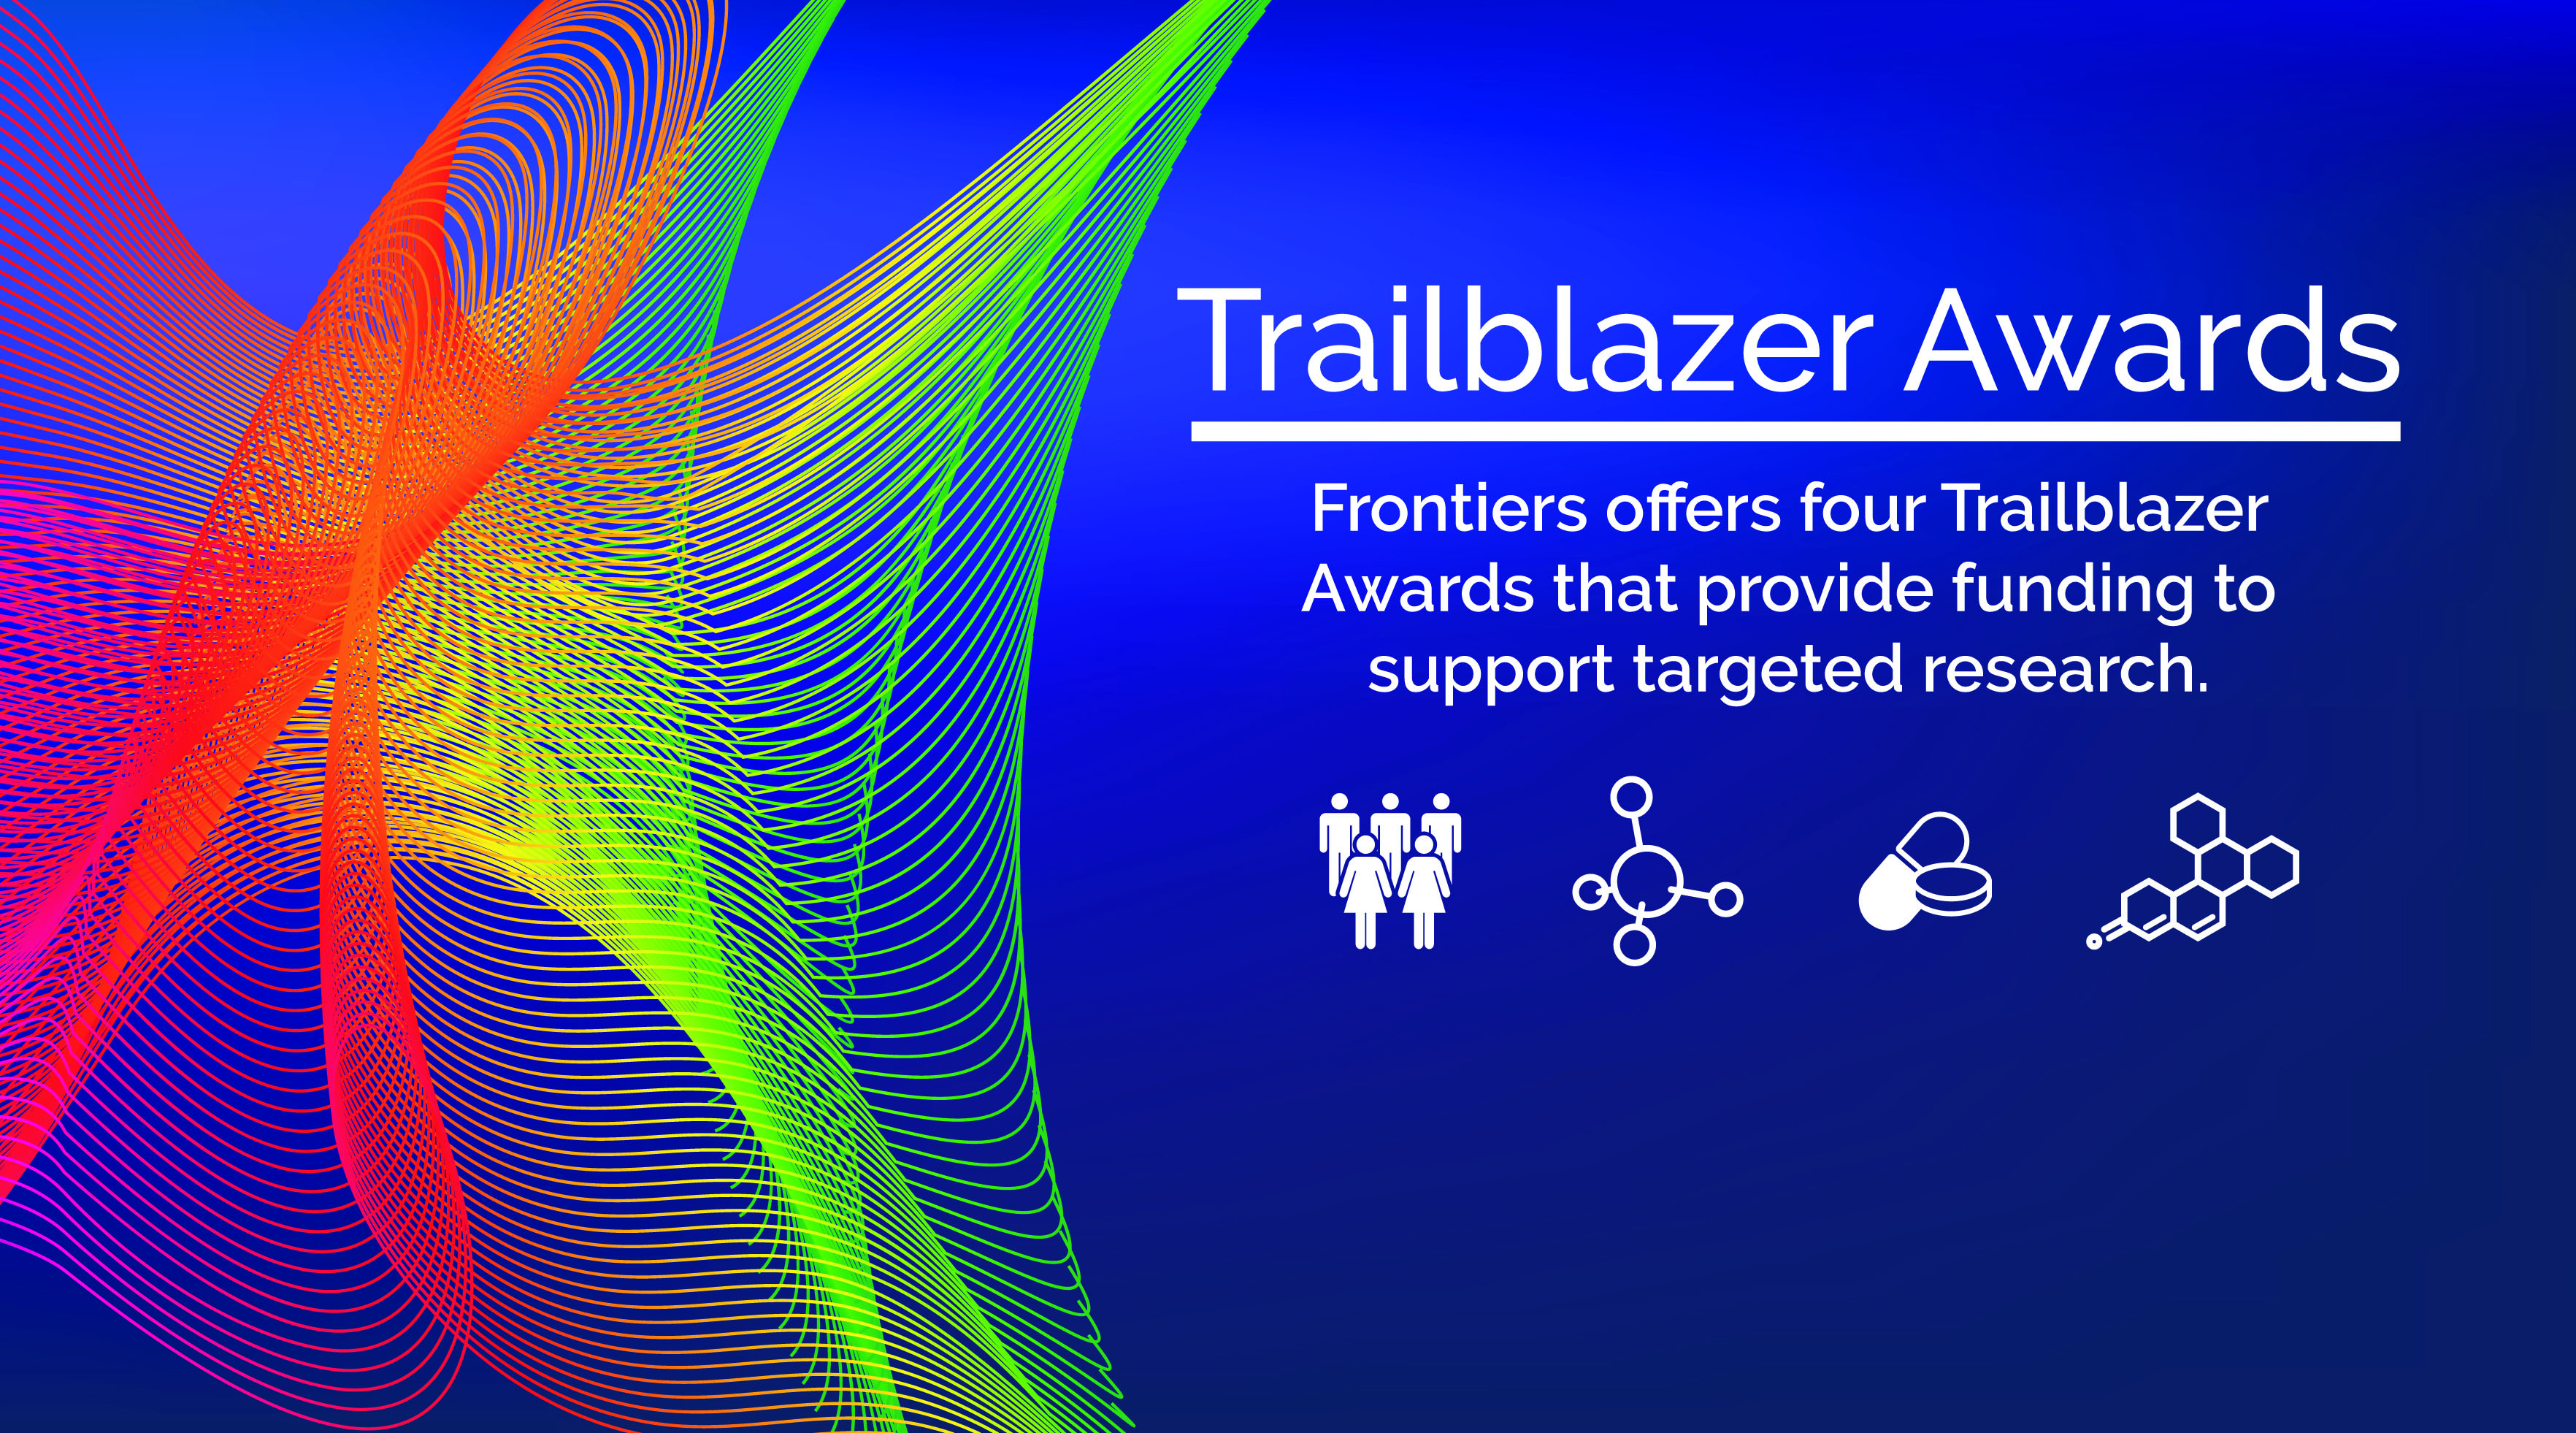 Trailblazer Awards: Frontiers offers four Trailblazer Awards that provide funding to support targeted research